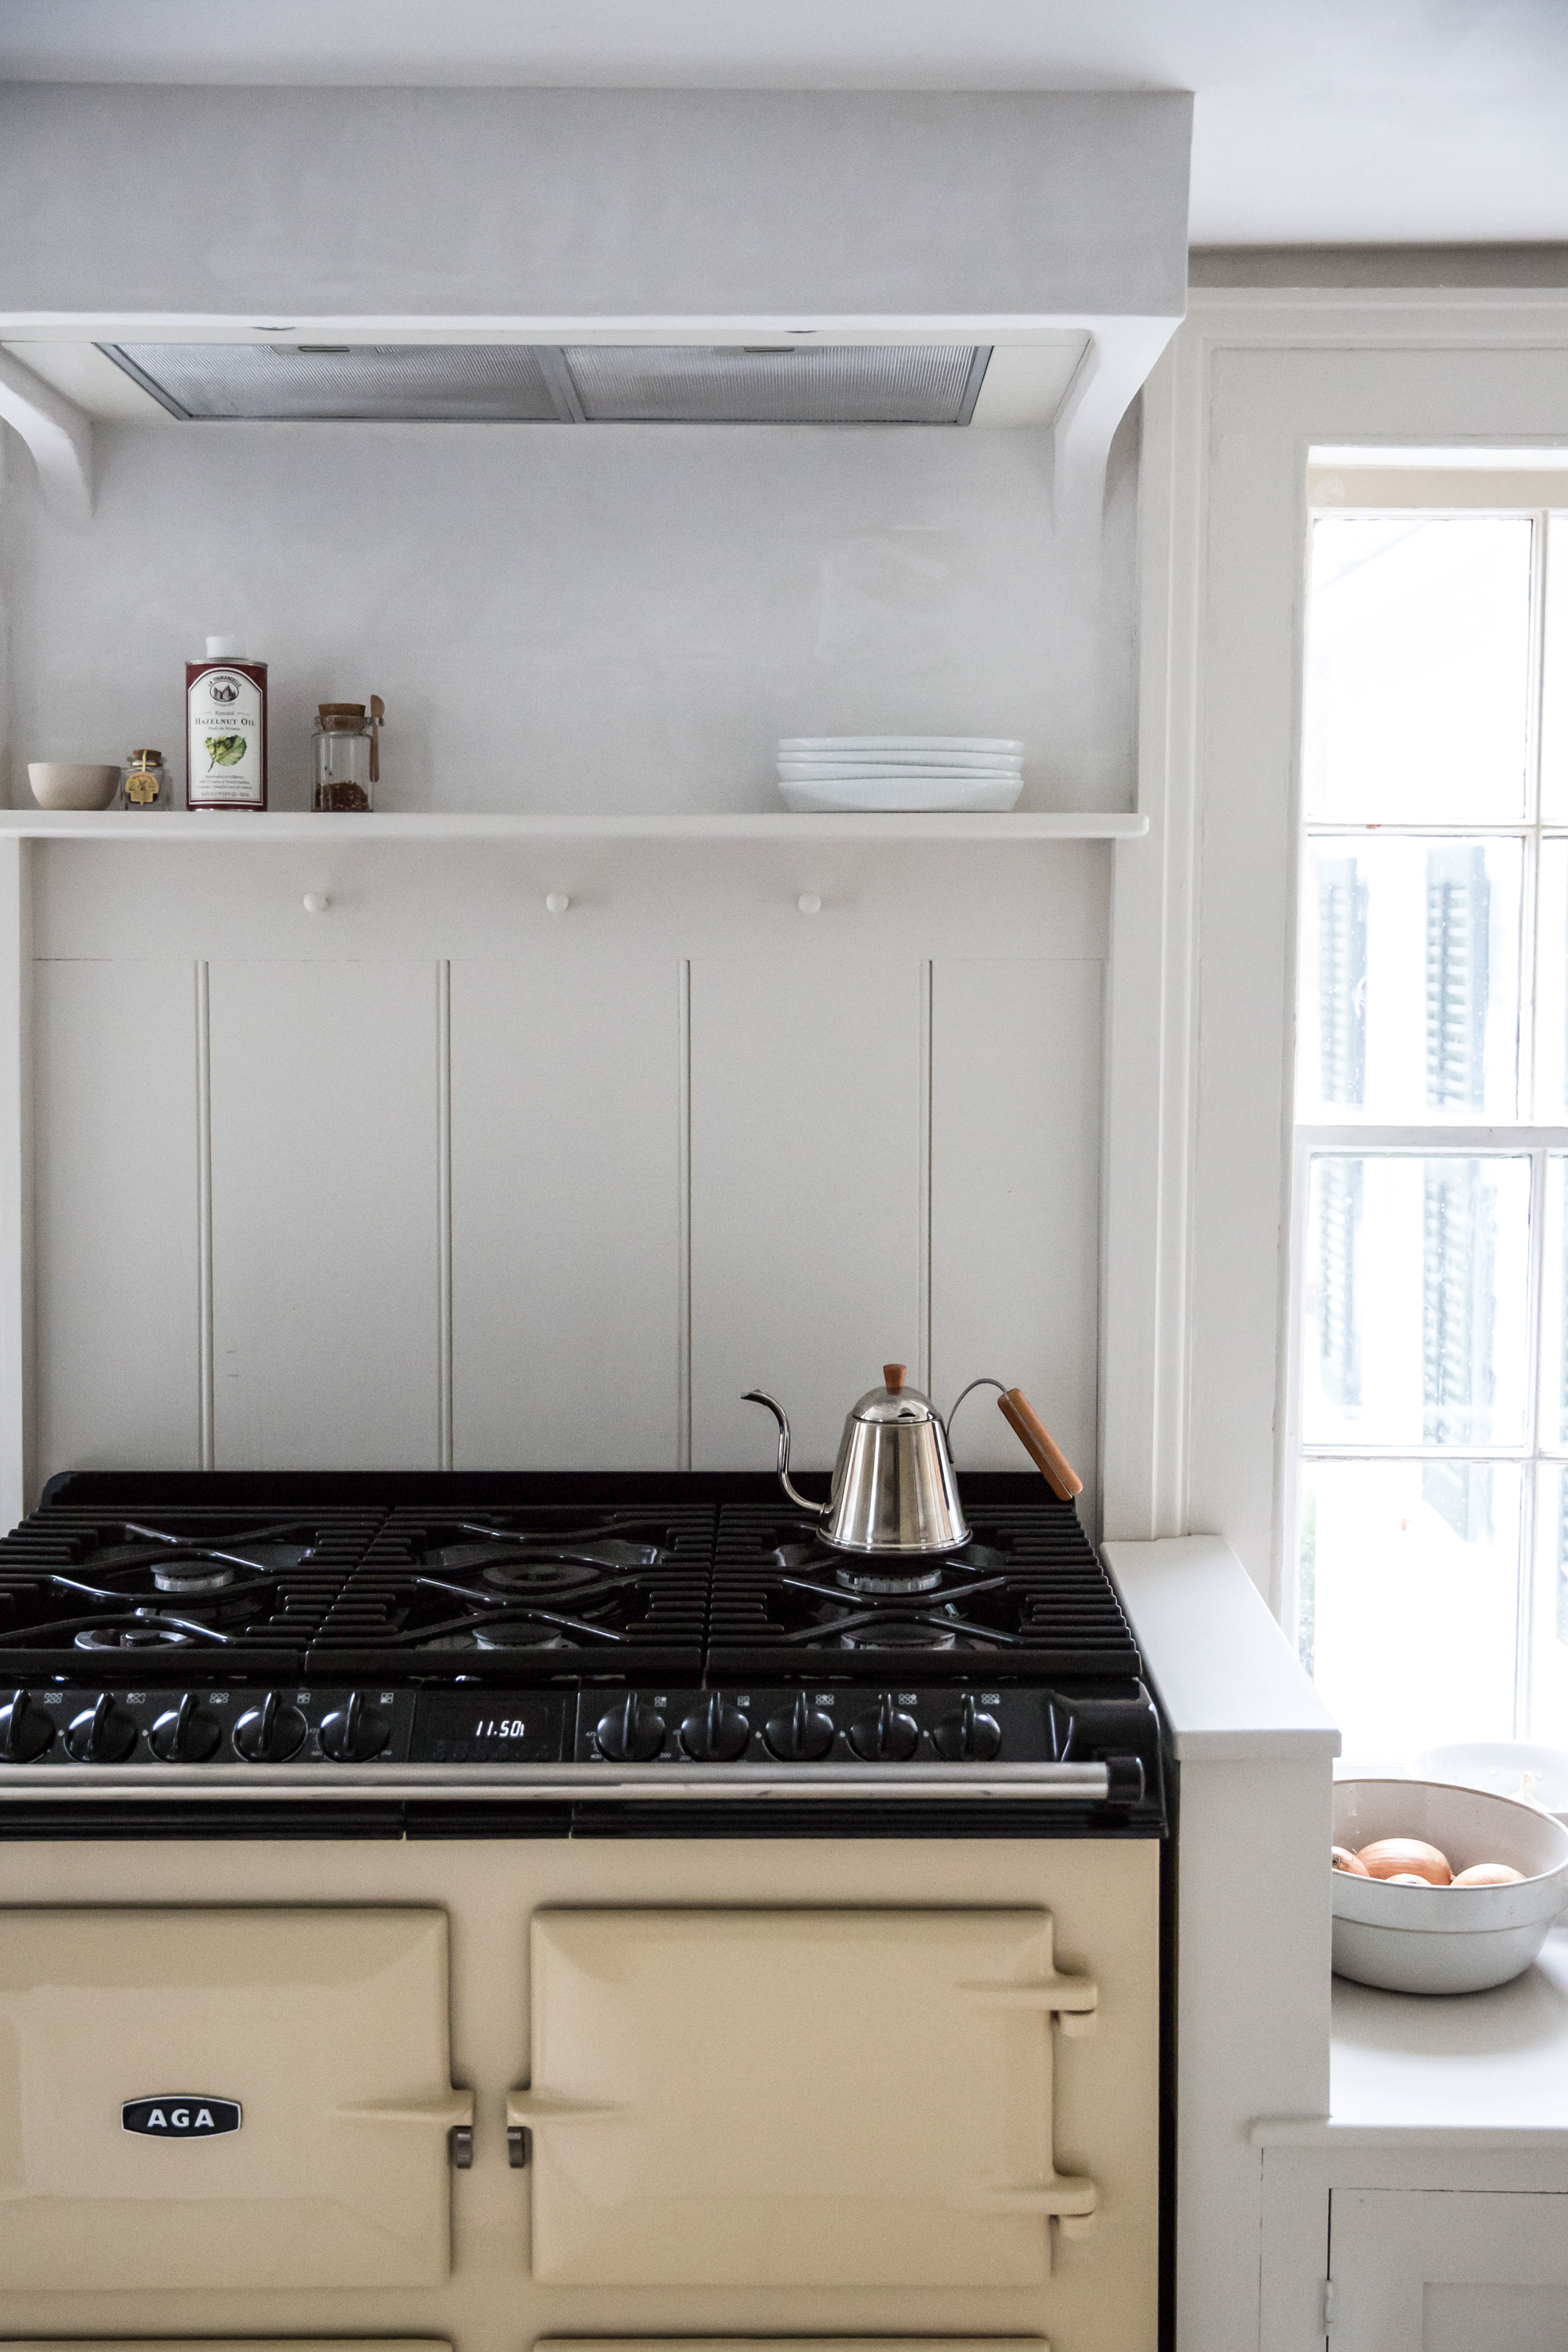 Jersey-Ice-Cream-Co.-Old-Chatham-House-Remodelista-stove